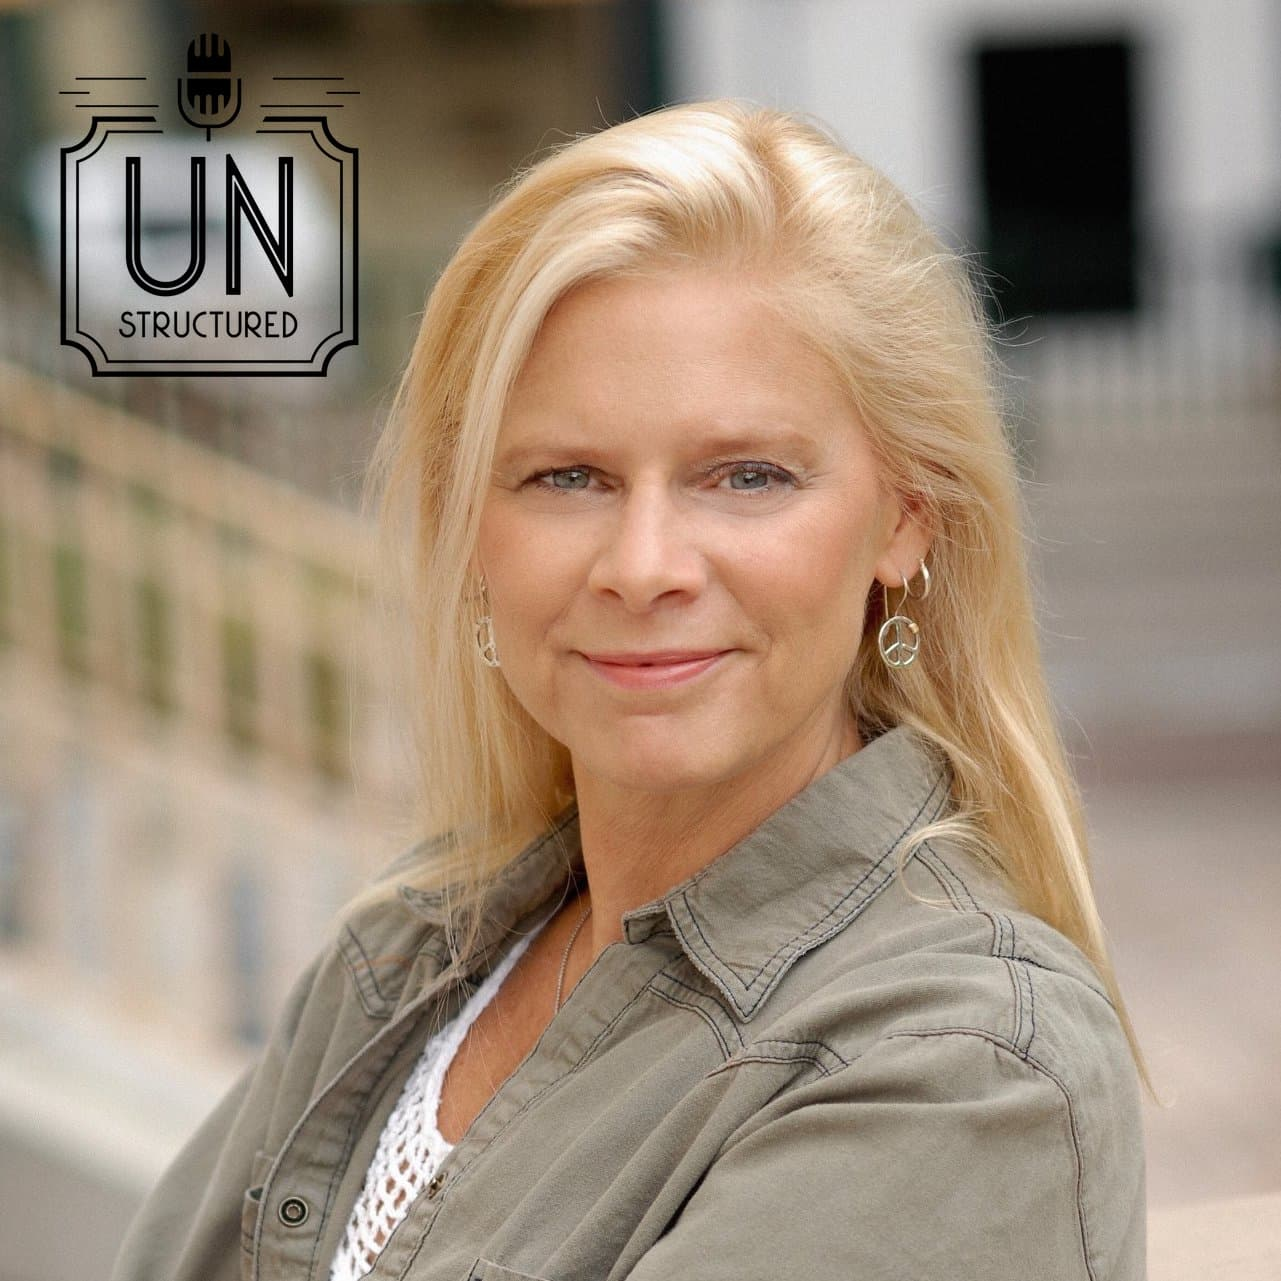 Dana Ridenour from FBI Undercover Agent to Author